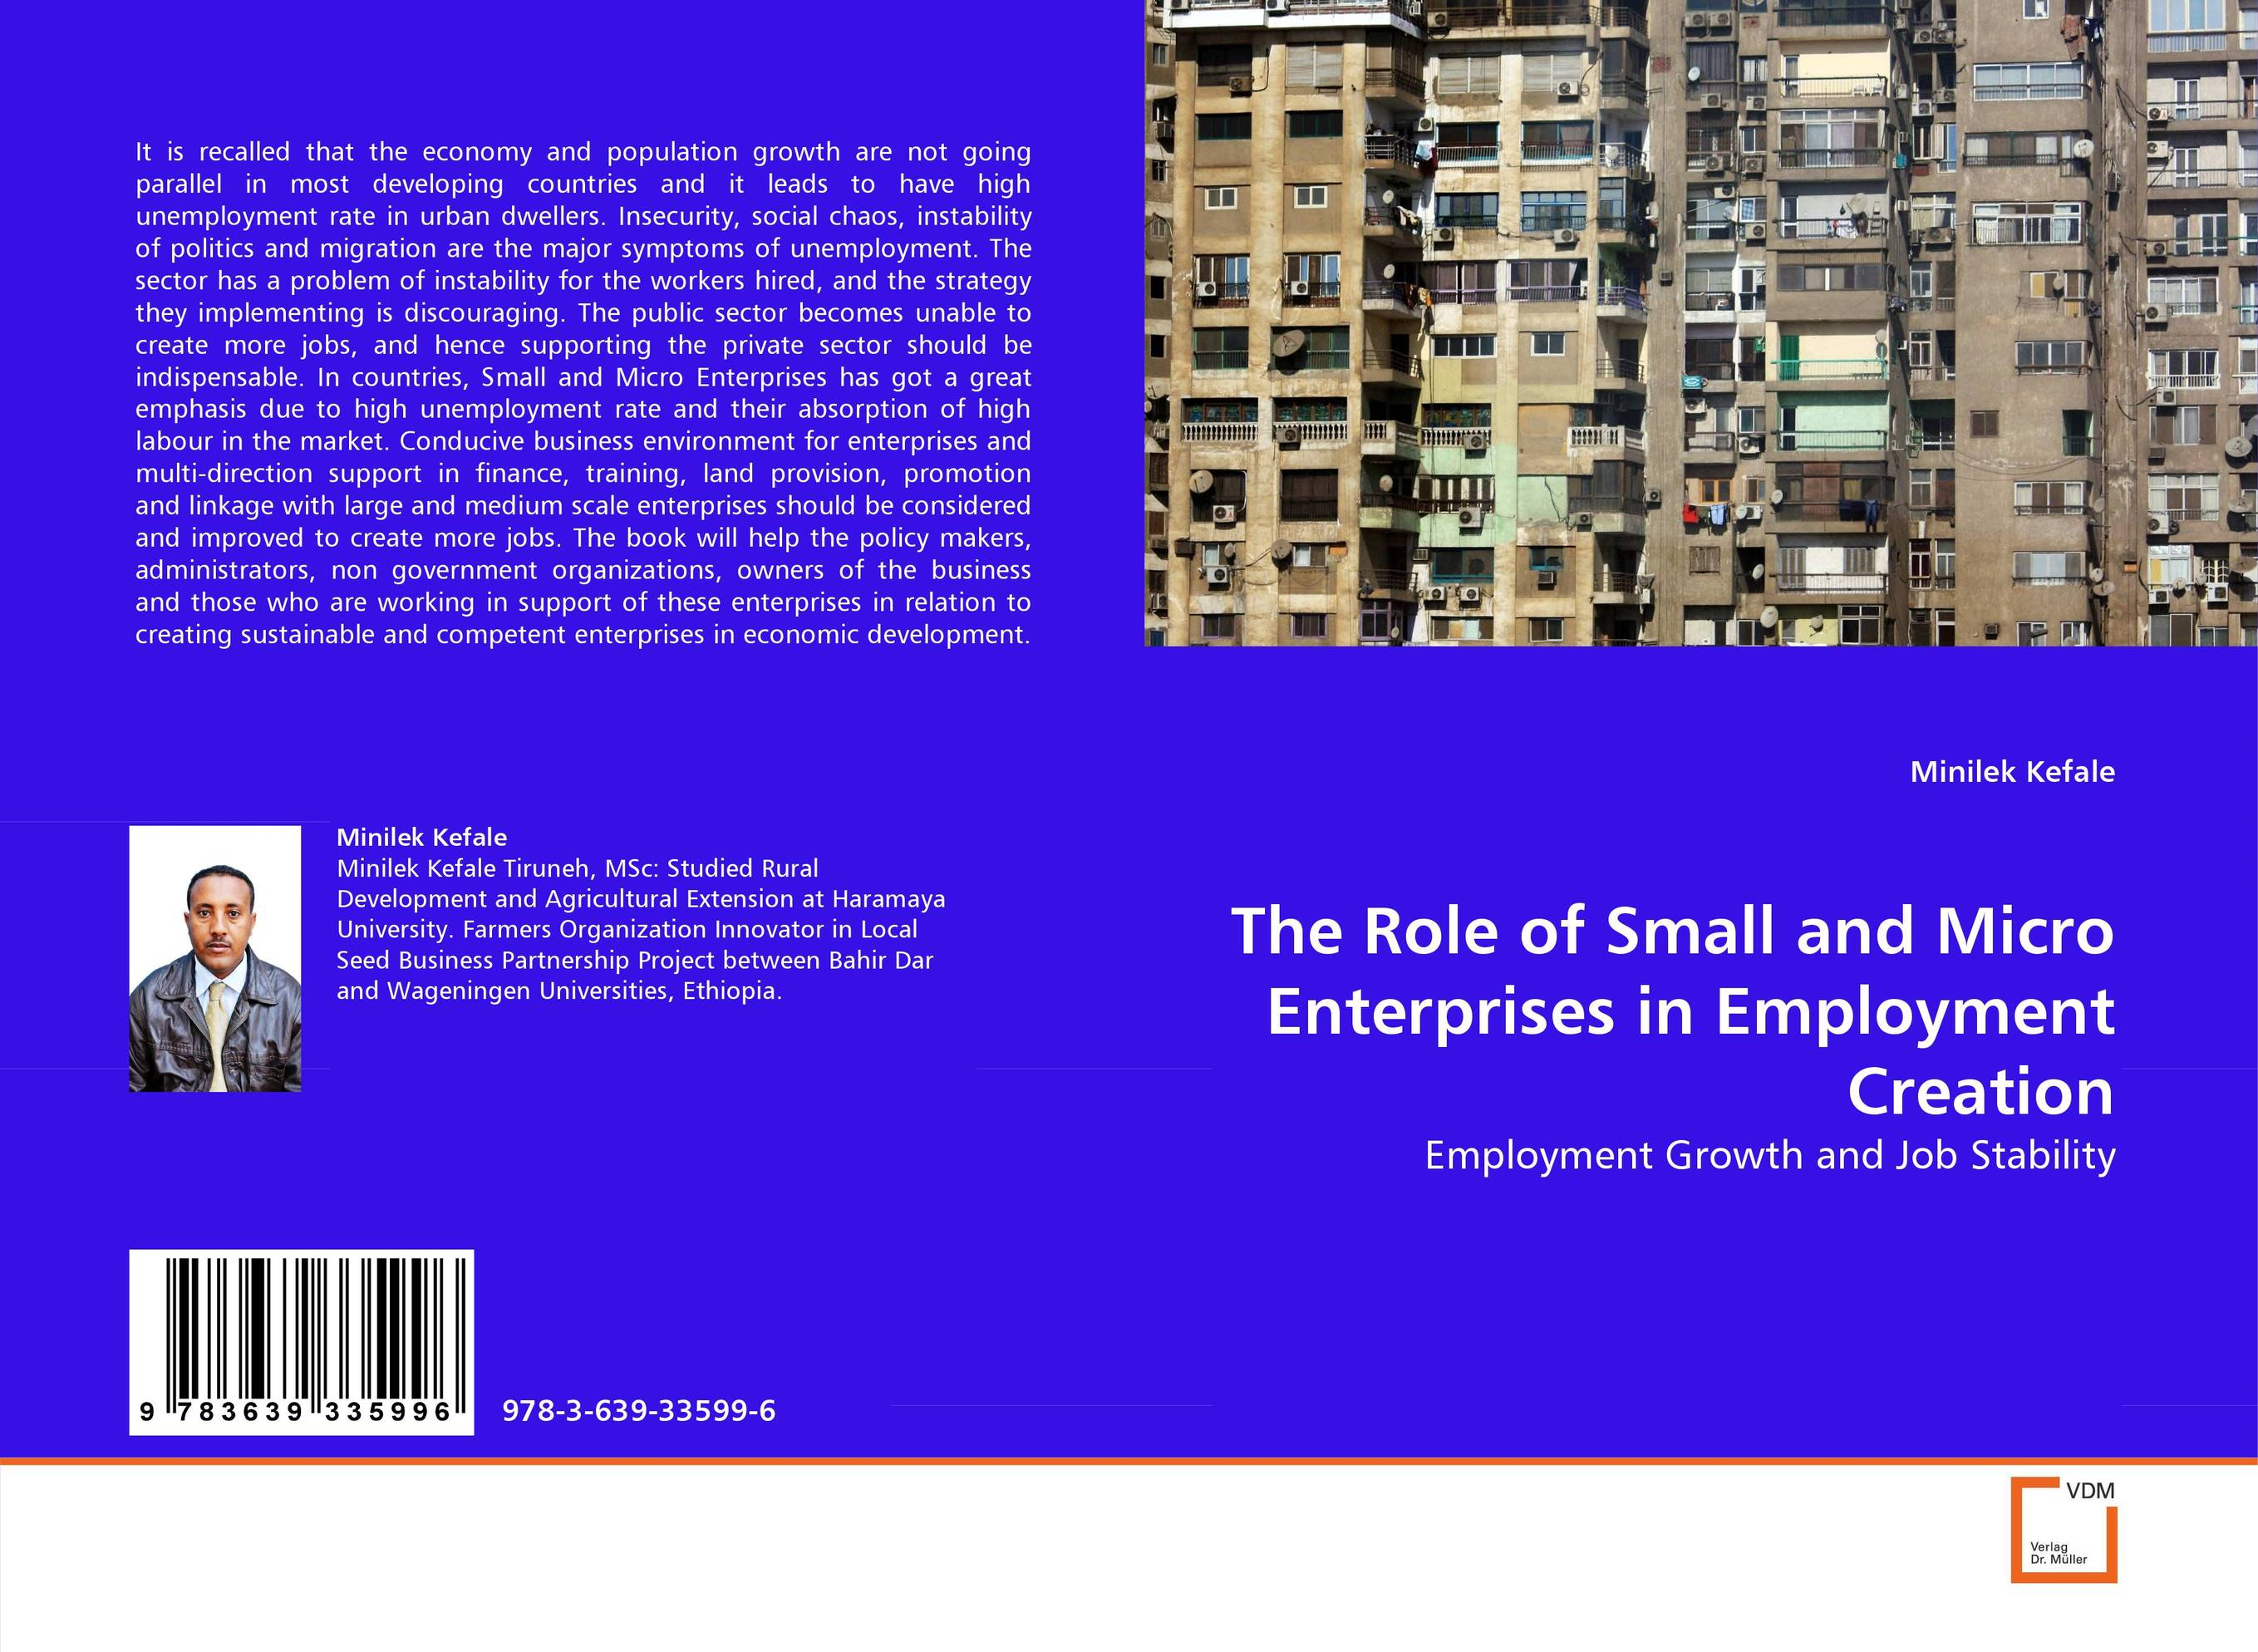 Фото The Role of Small and Micro Enterprises in Employment Creation finance and investments